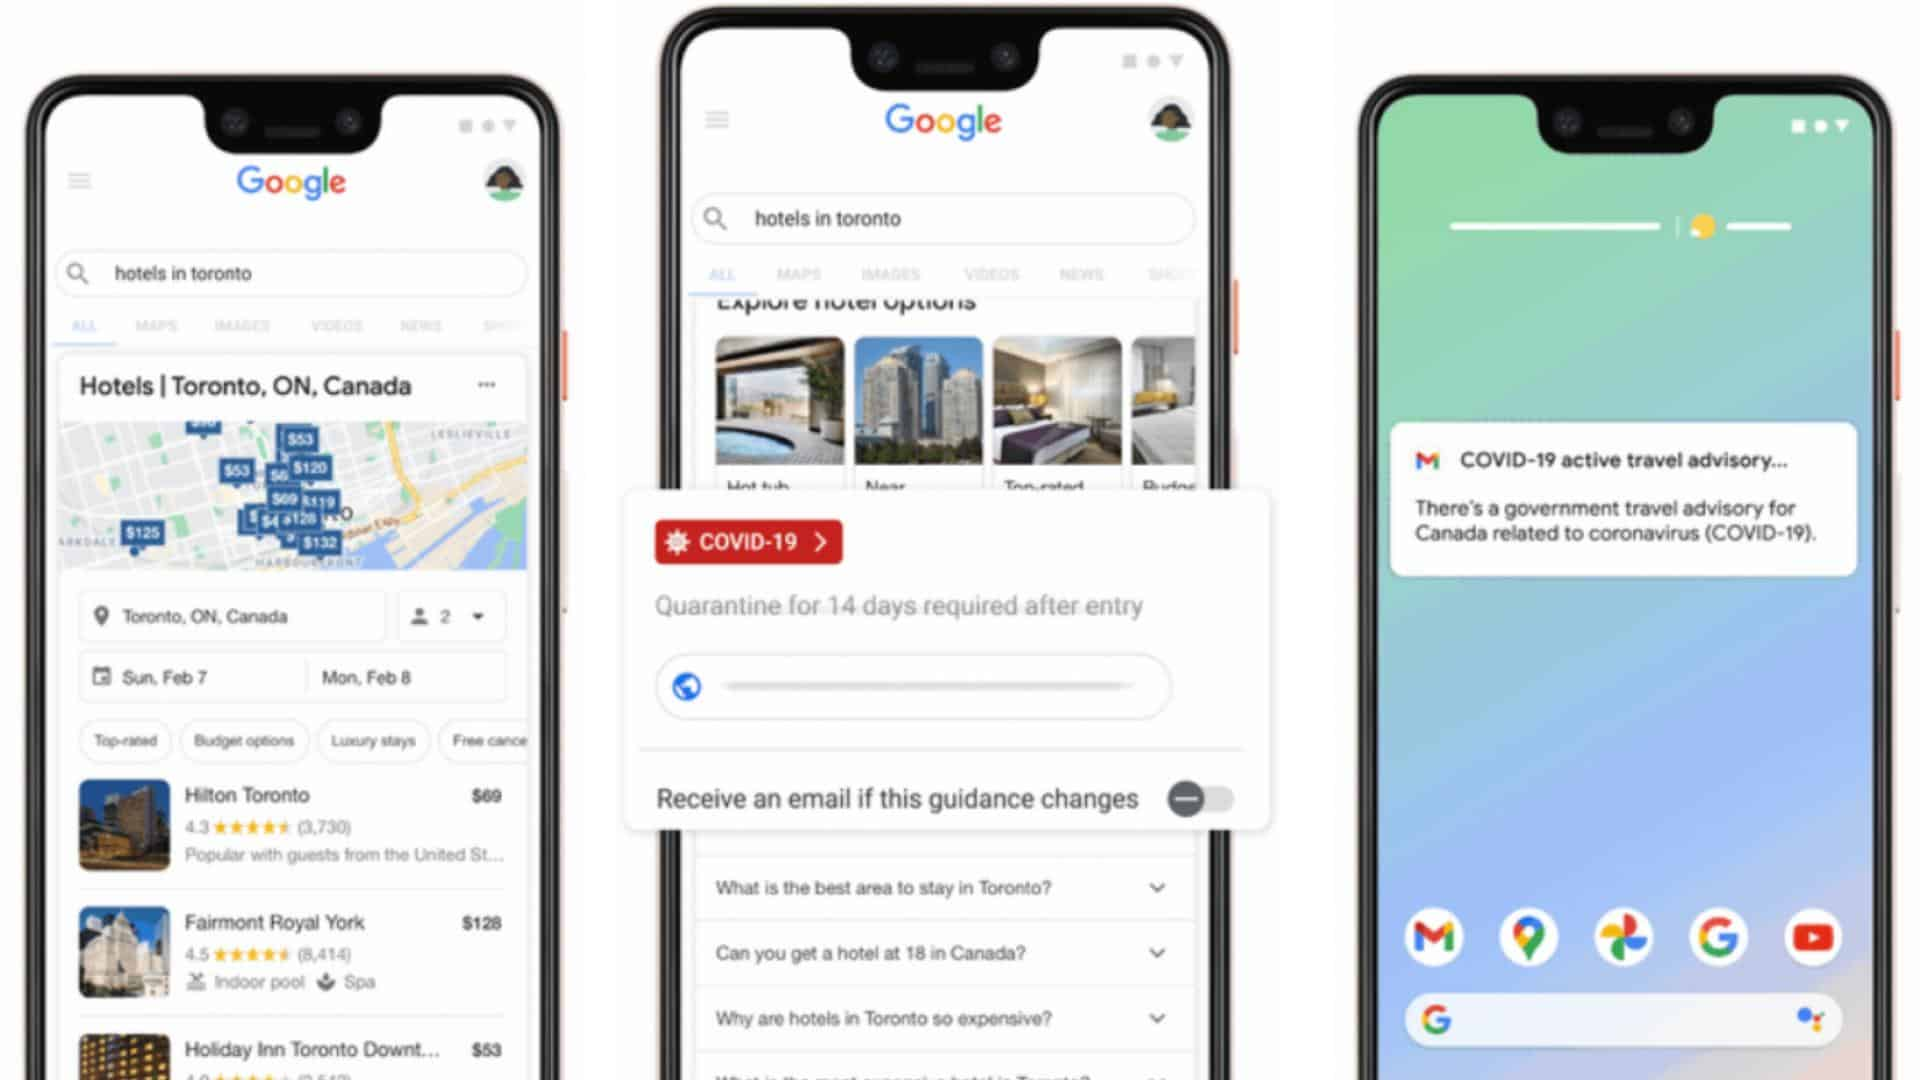 Google Extends Covid-19 Travel Information In Search, Now With Alerts